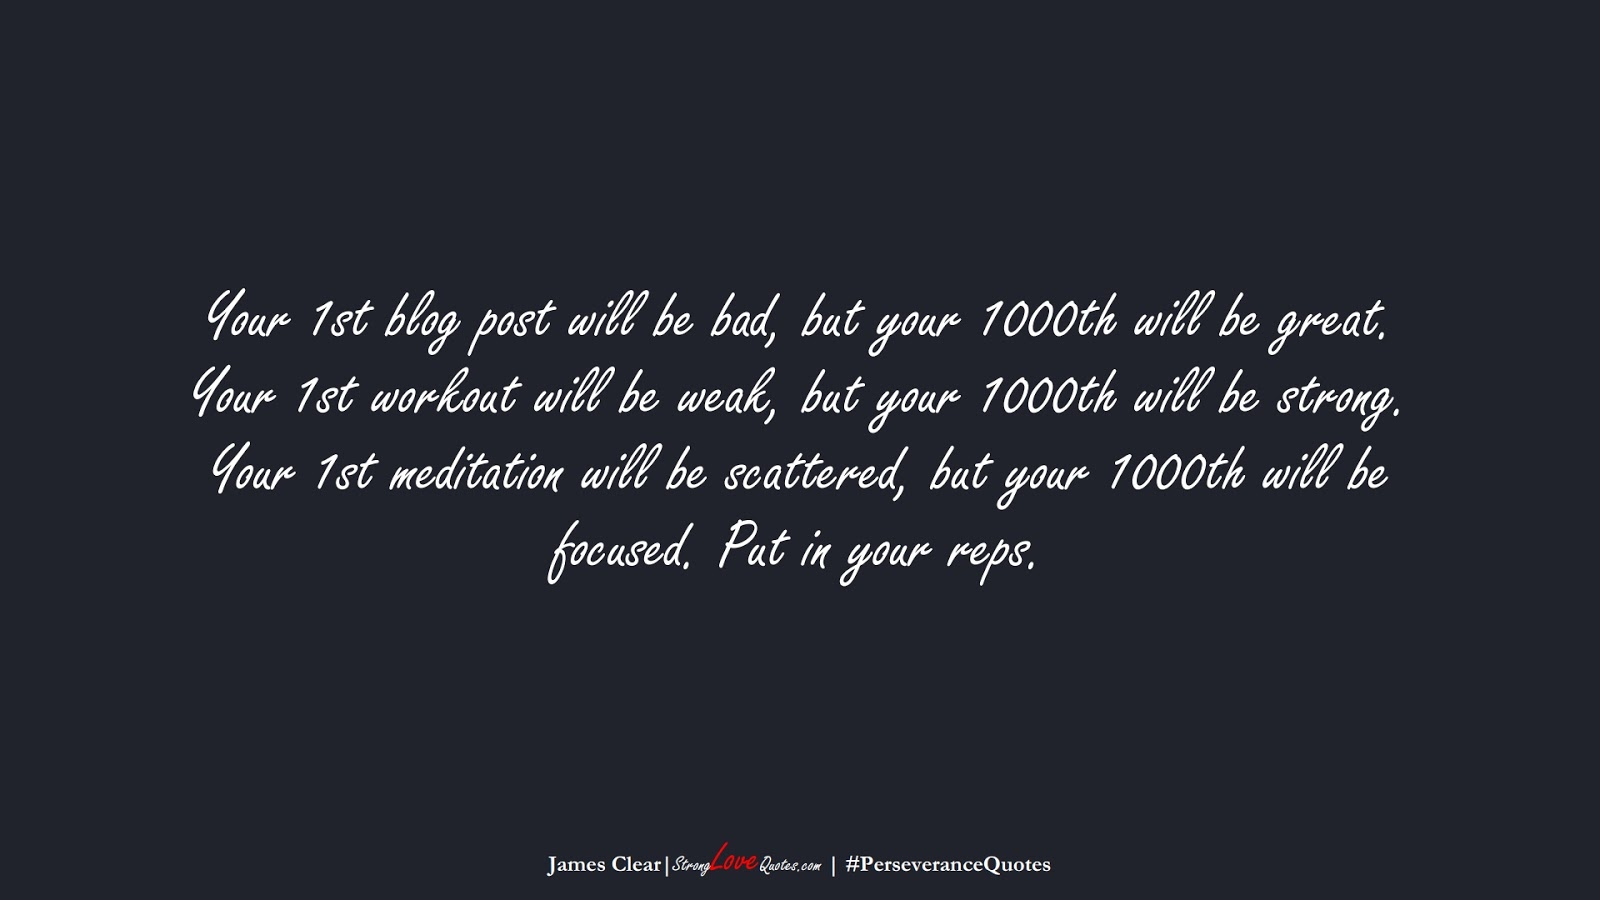 Your 1st blog post will be bad, but your 1000th will be great. Your 1st workout will be weak, but your 1000th will be strong. Your 1st meditation will be scattered, but your 1000th will be focused. Put in your reps. (James Clear);  #PerseveranceQuotes